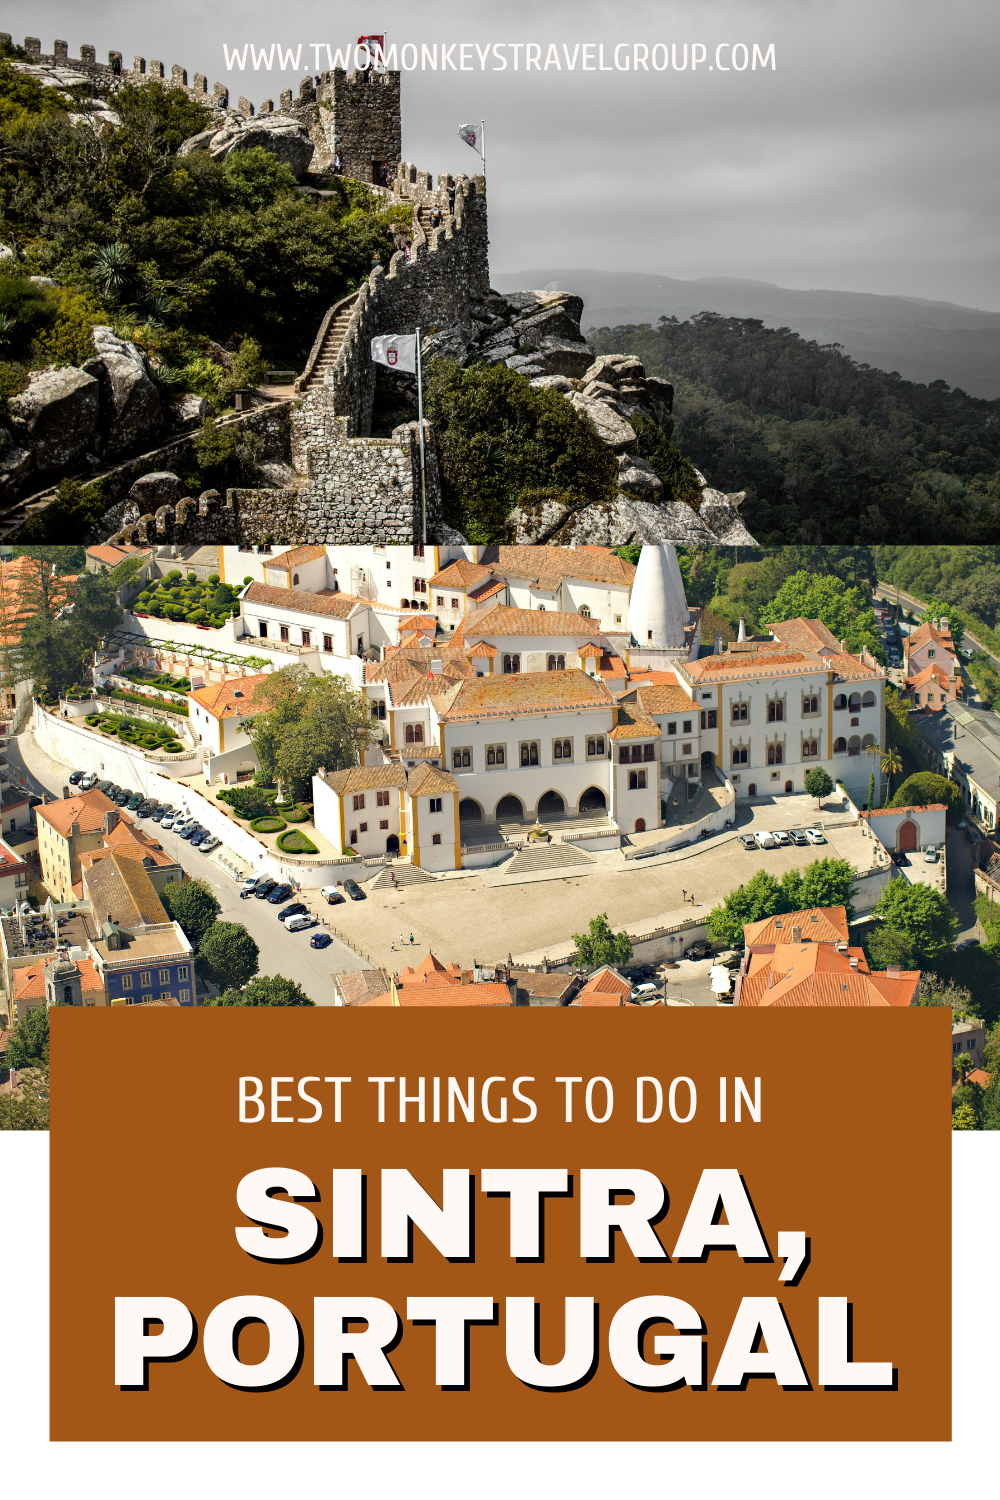 Las 10 mejores cosas que hacer en Sintra, Portugal [with Suggested Tours]